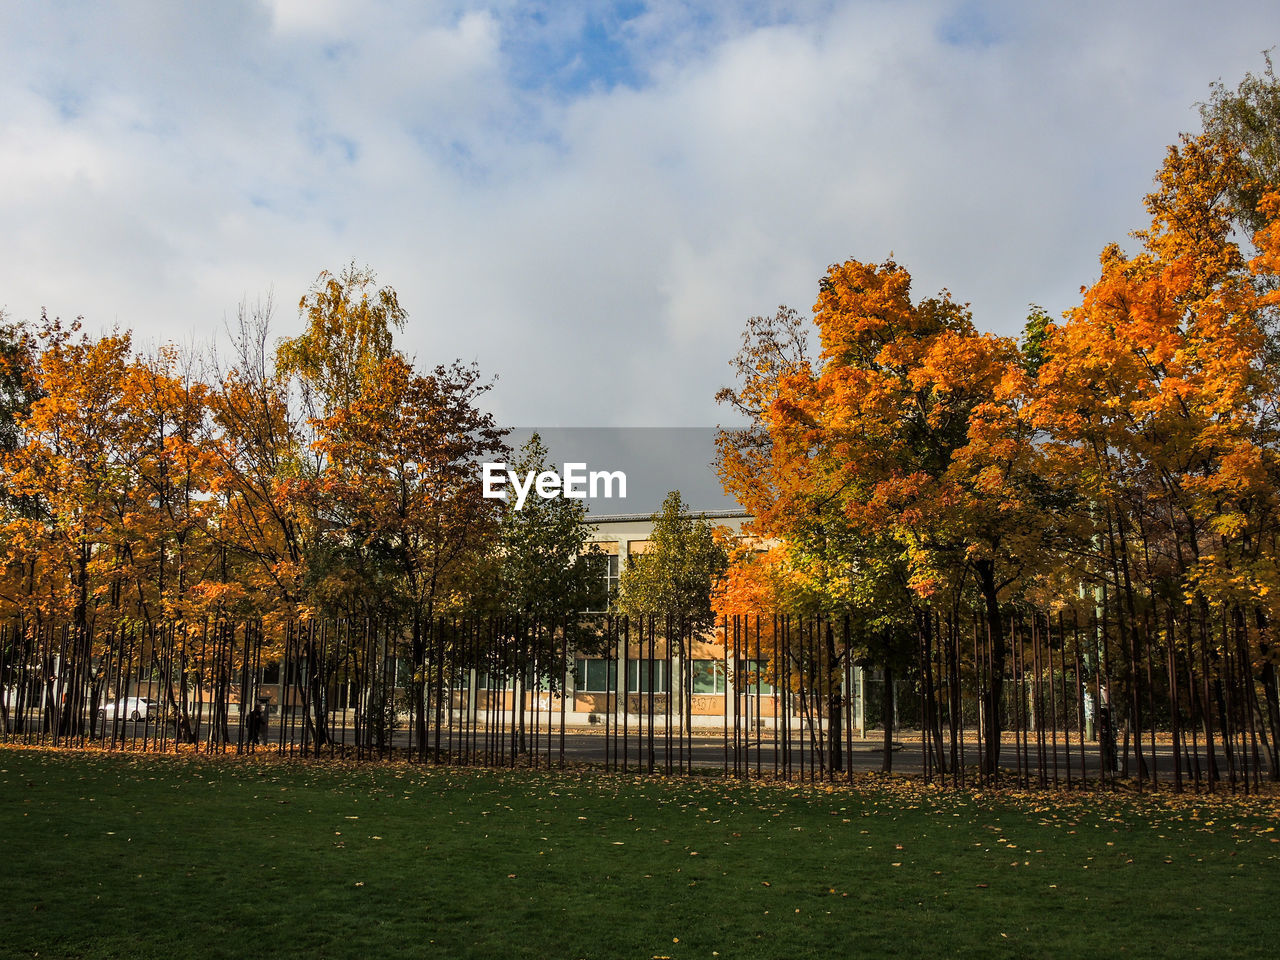 tree, autumn, nature, no people, sky, beauty in nature, change, outdoors, tranquility, grass, growth, scenics, day